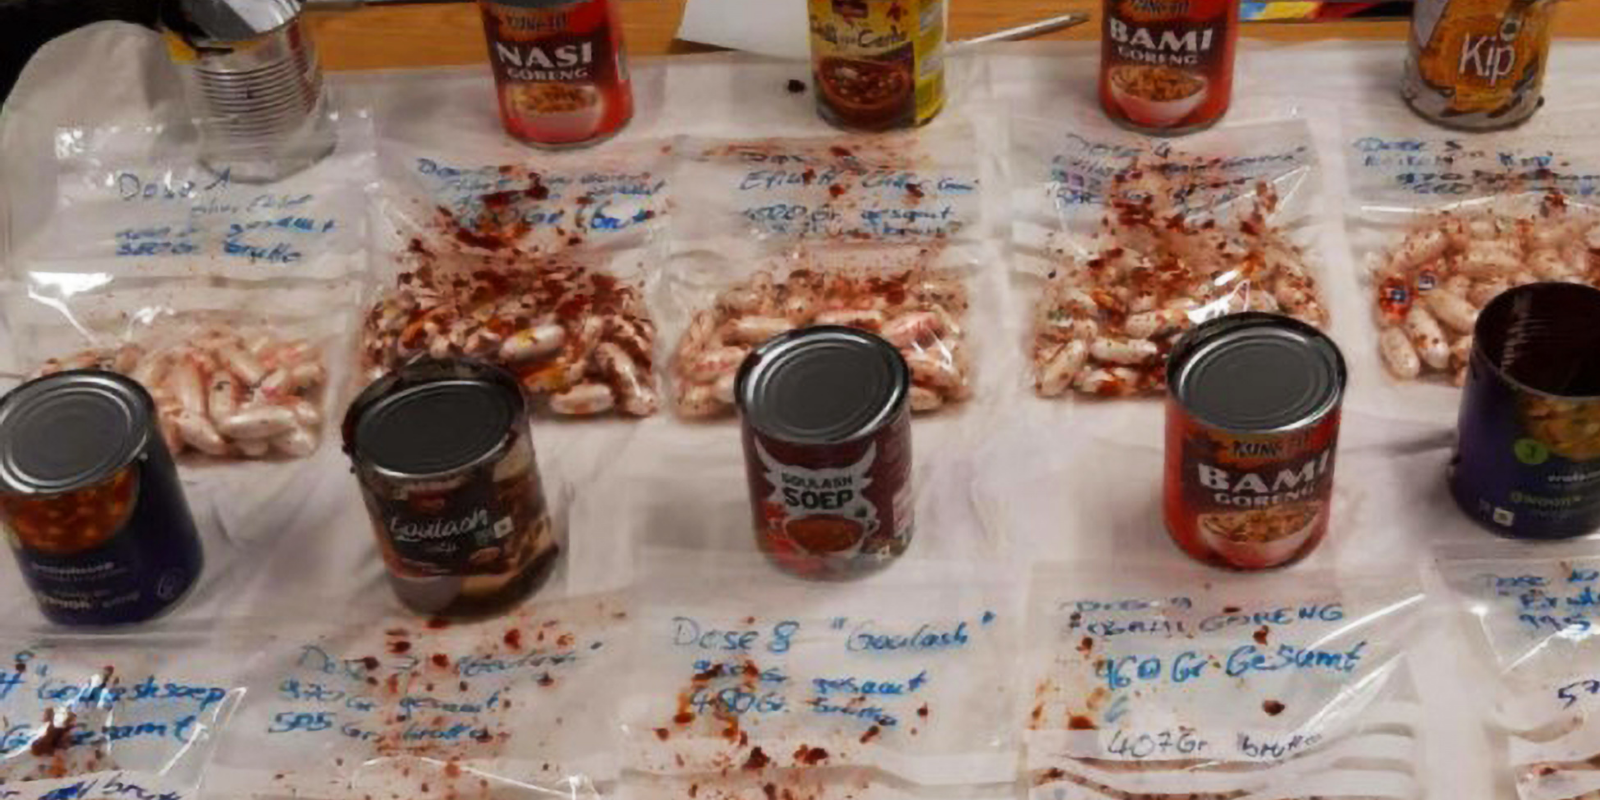 Food cans and cheeseburgers: Drug smugglers' latest ploys